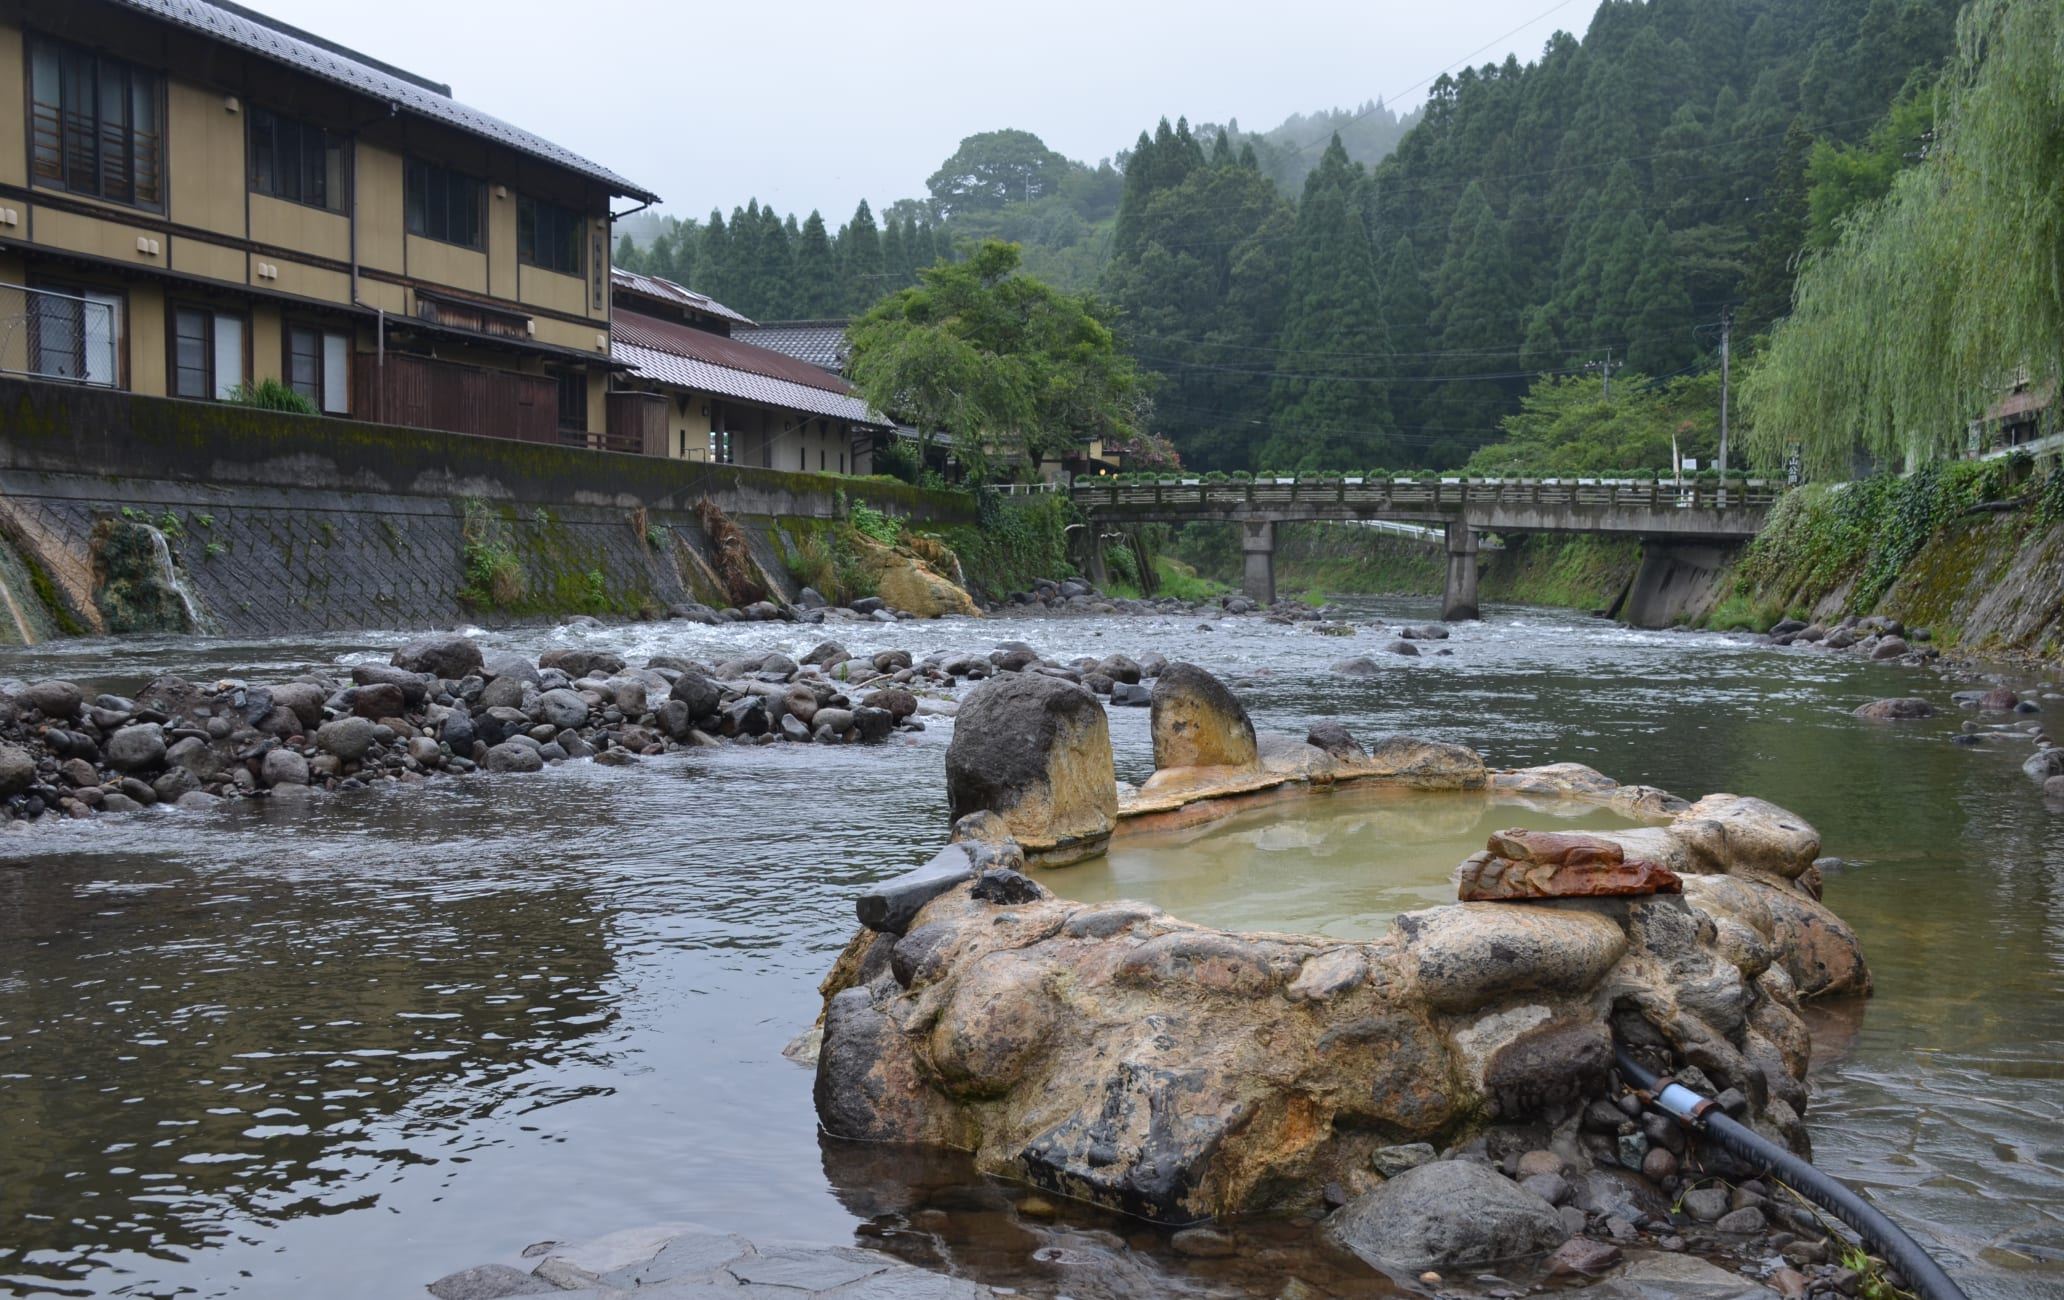 Gozenyu Nagayu Hot Springs Convalescence Culture Center